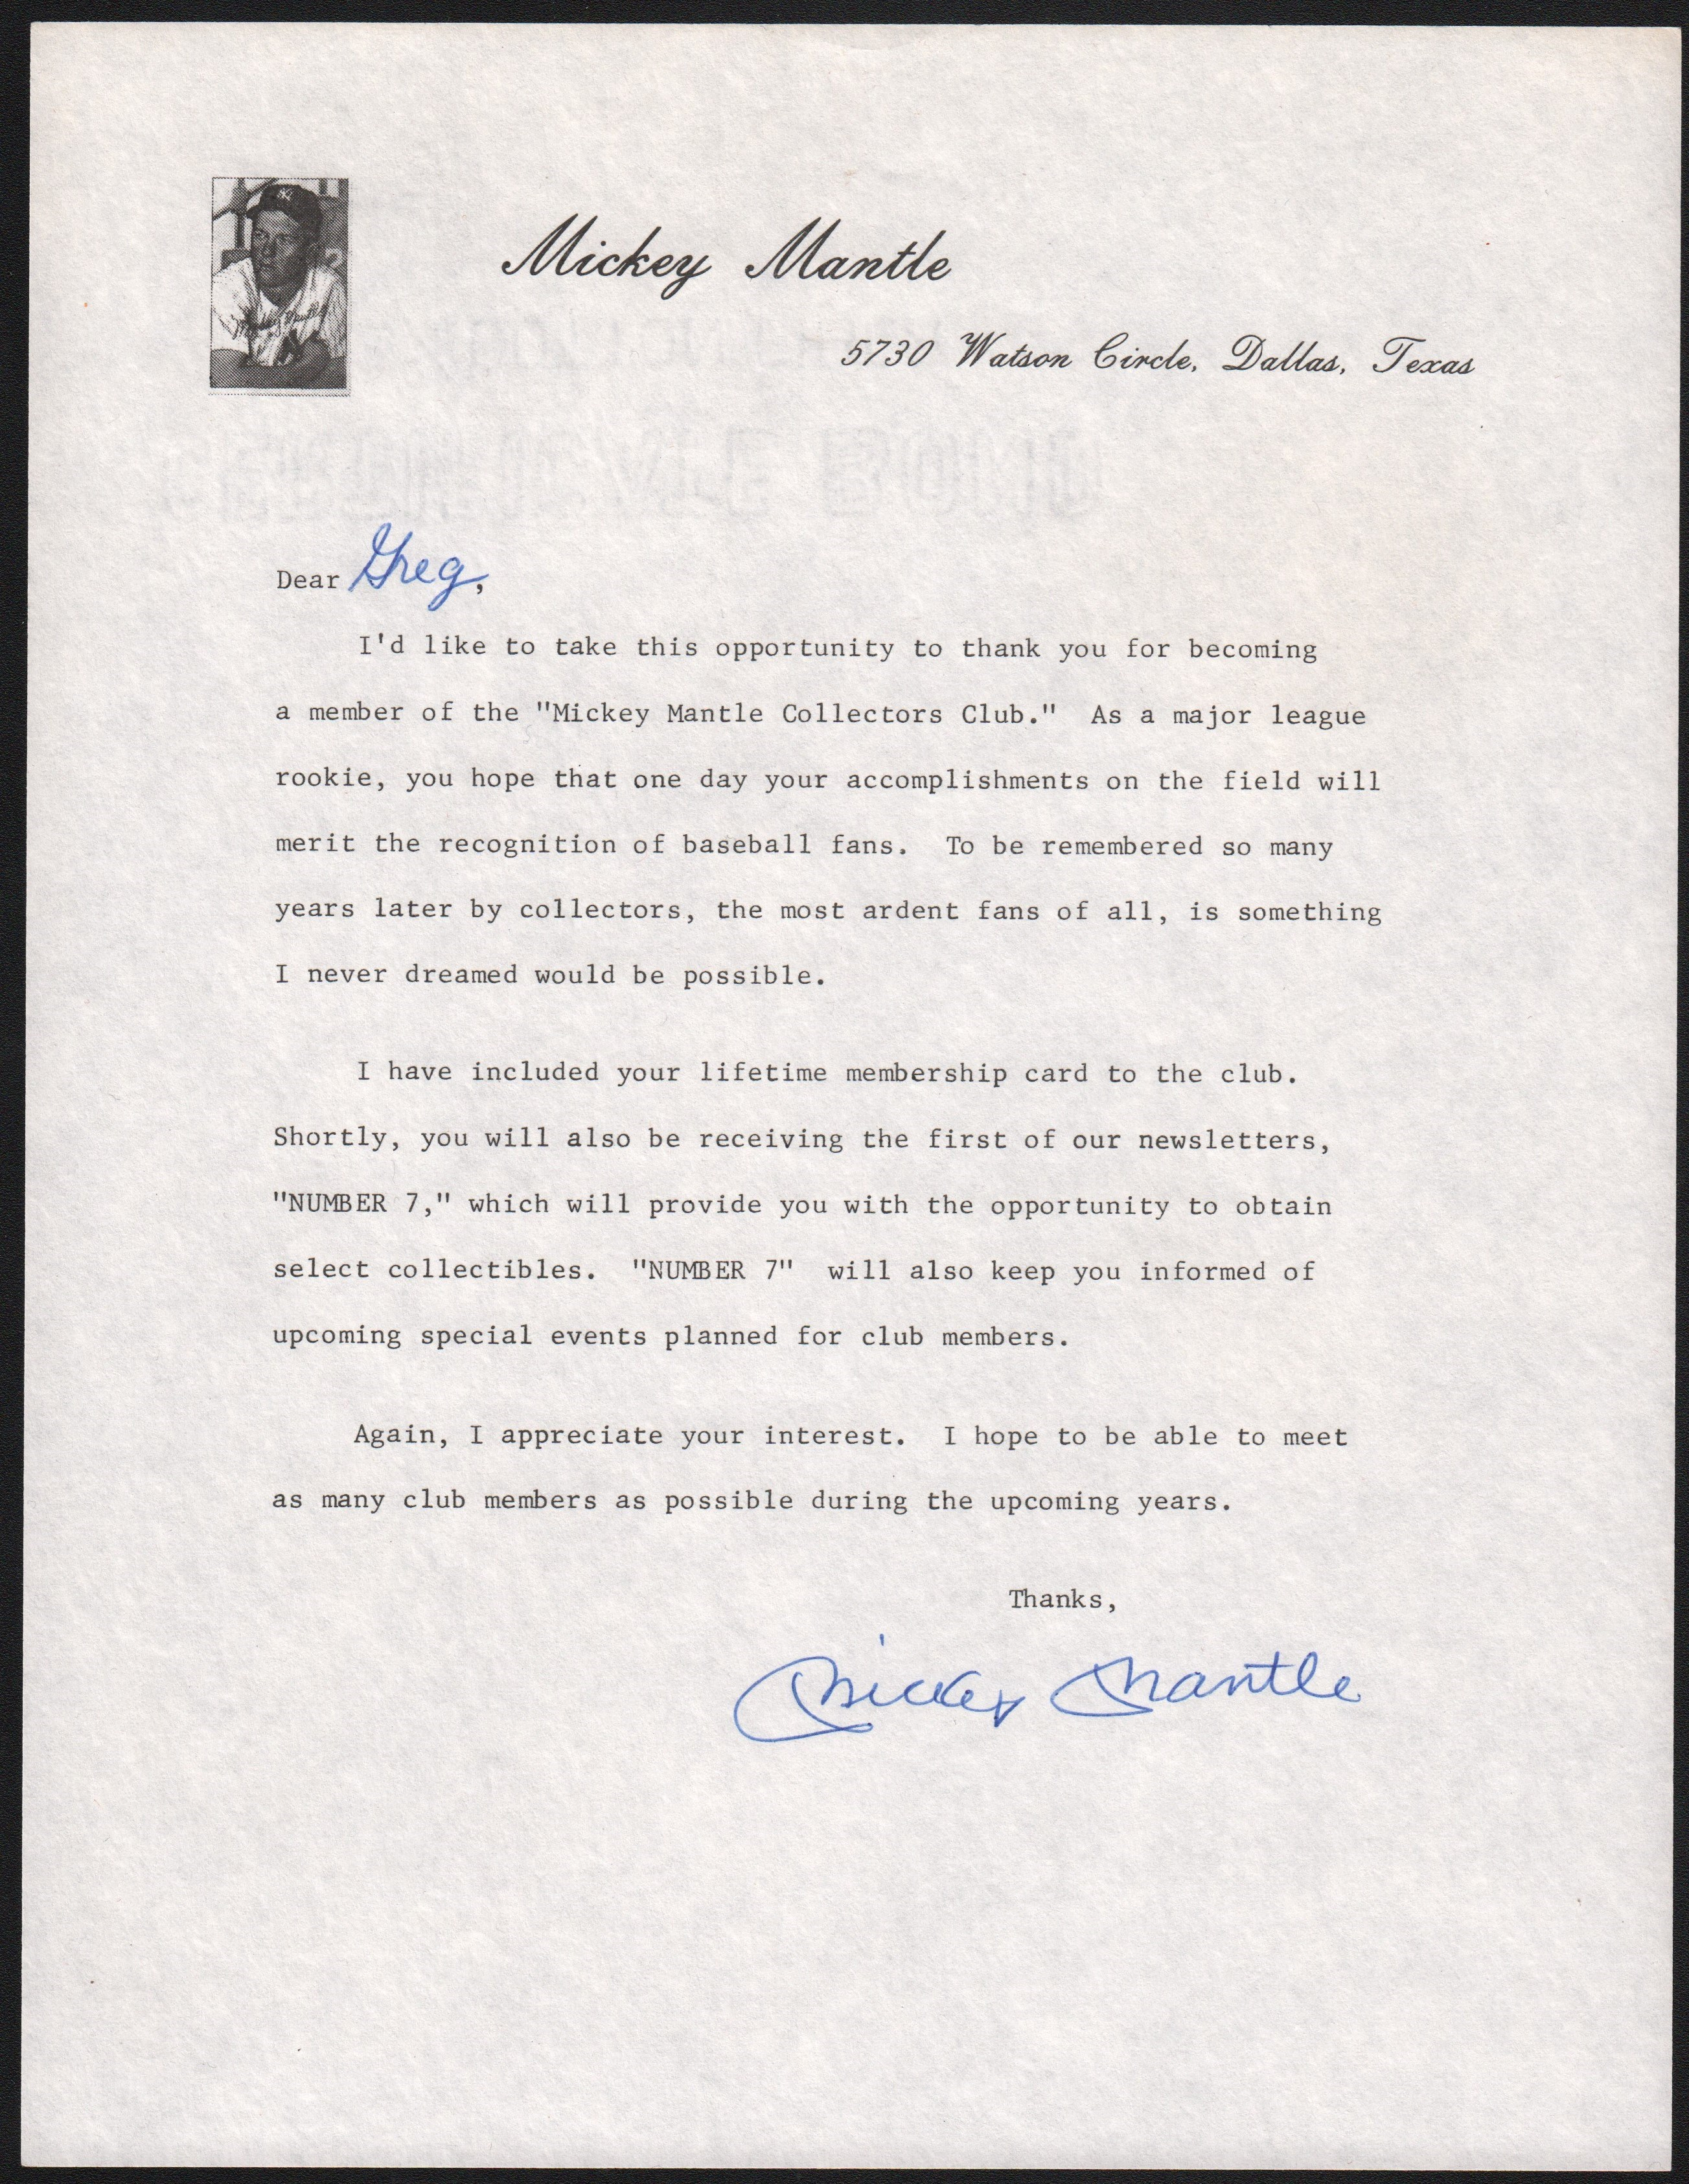 Gorgeous 1985 Mickey Mantle Signed Letter w/Collectors Club Kit